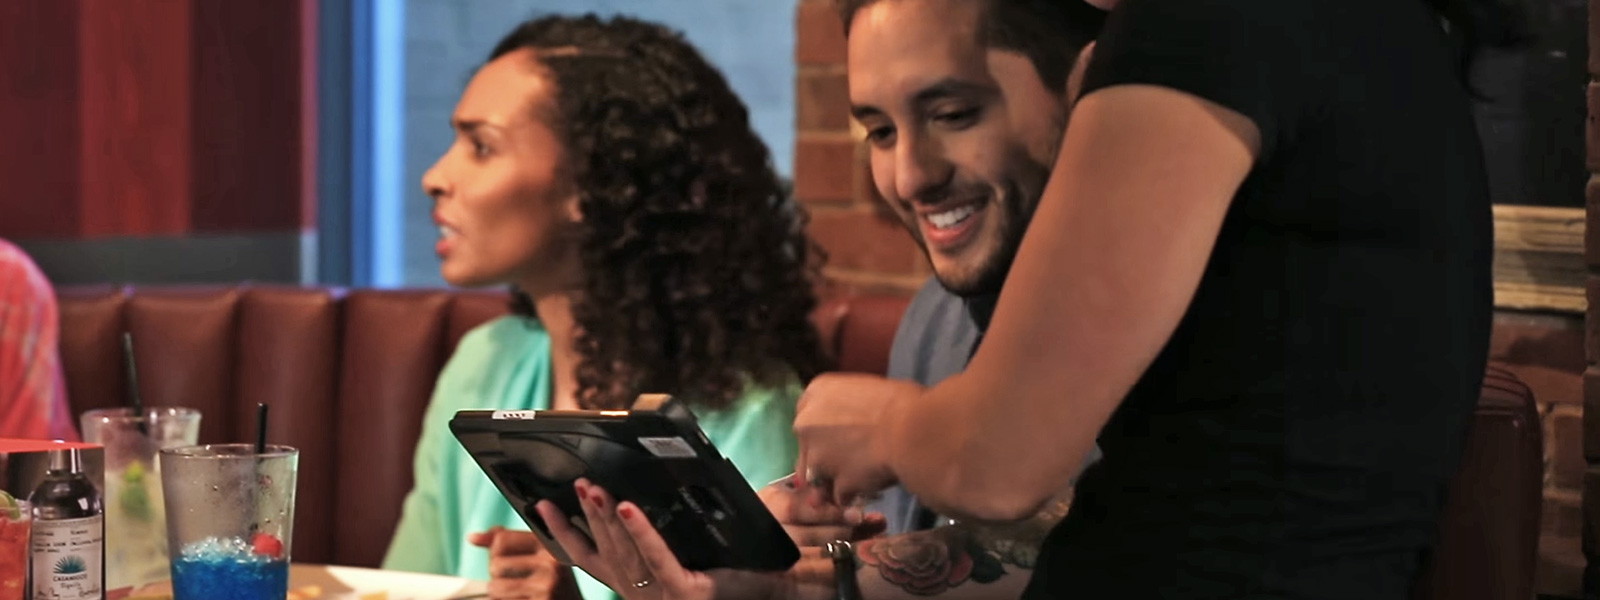 TGI Fridays customers interacting with device at table